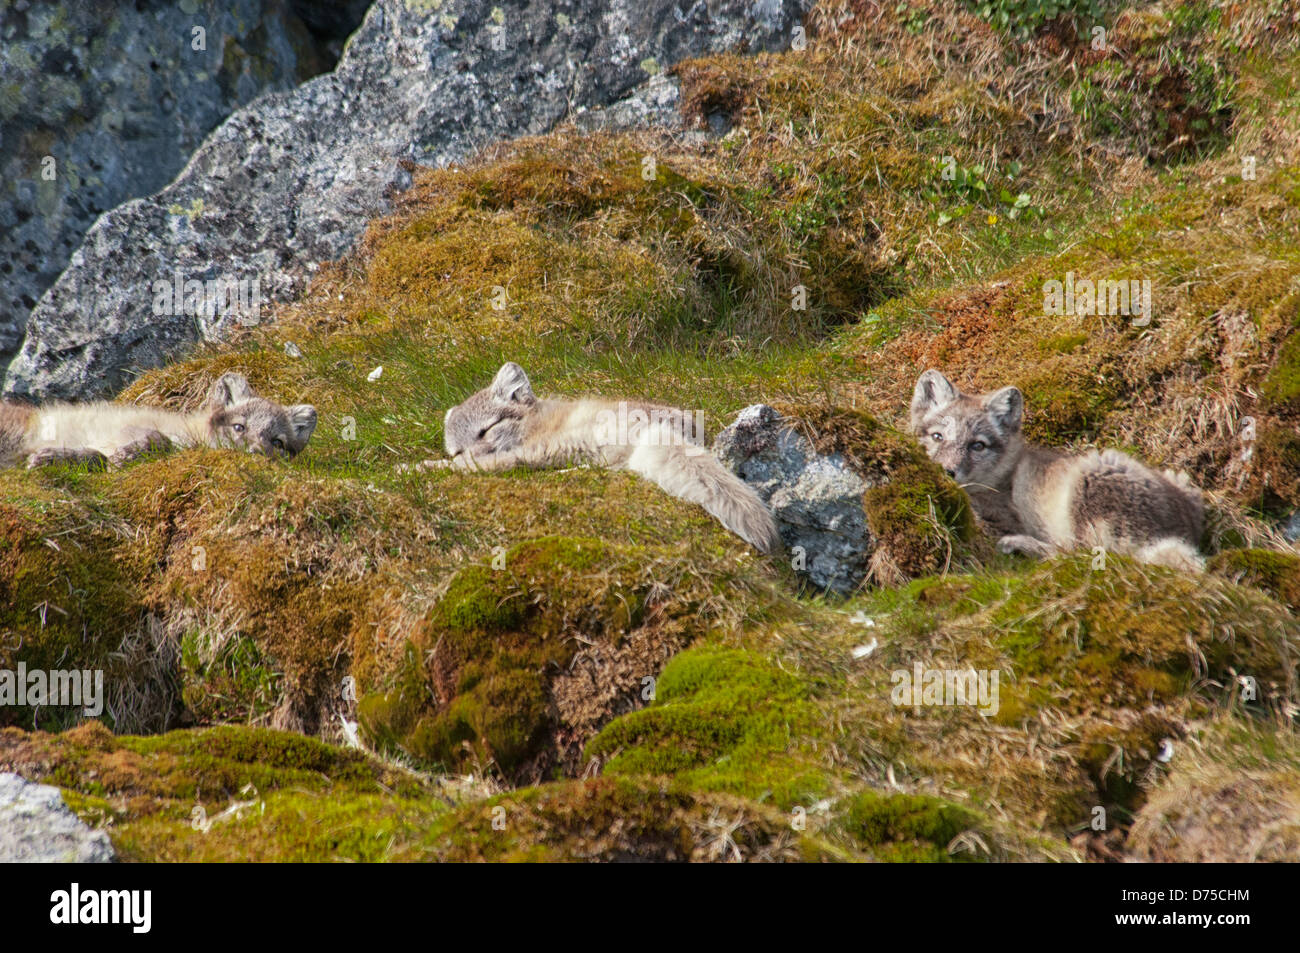 Three Arctic Fox Pups, Vulpes lagopus. in summer pelage, lying down in the tundra Alkehornet, Spitsbergen, Svalbard, - Stock Image